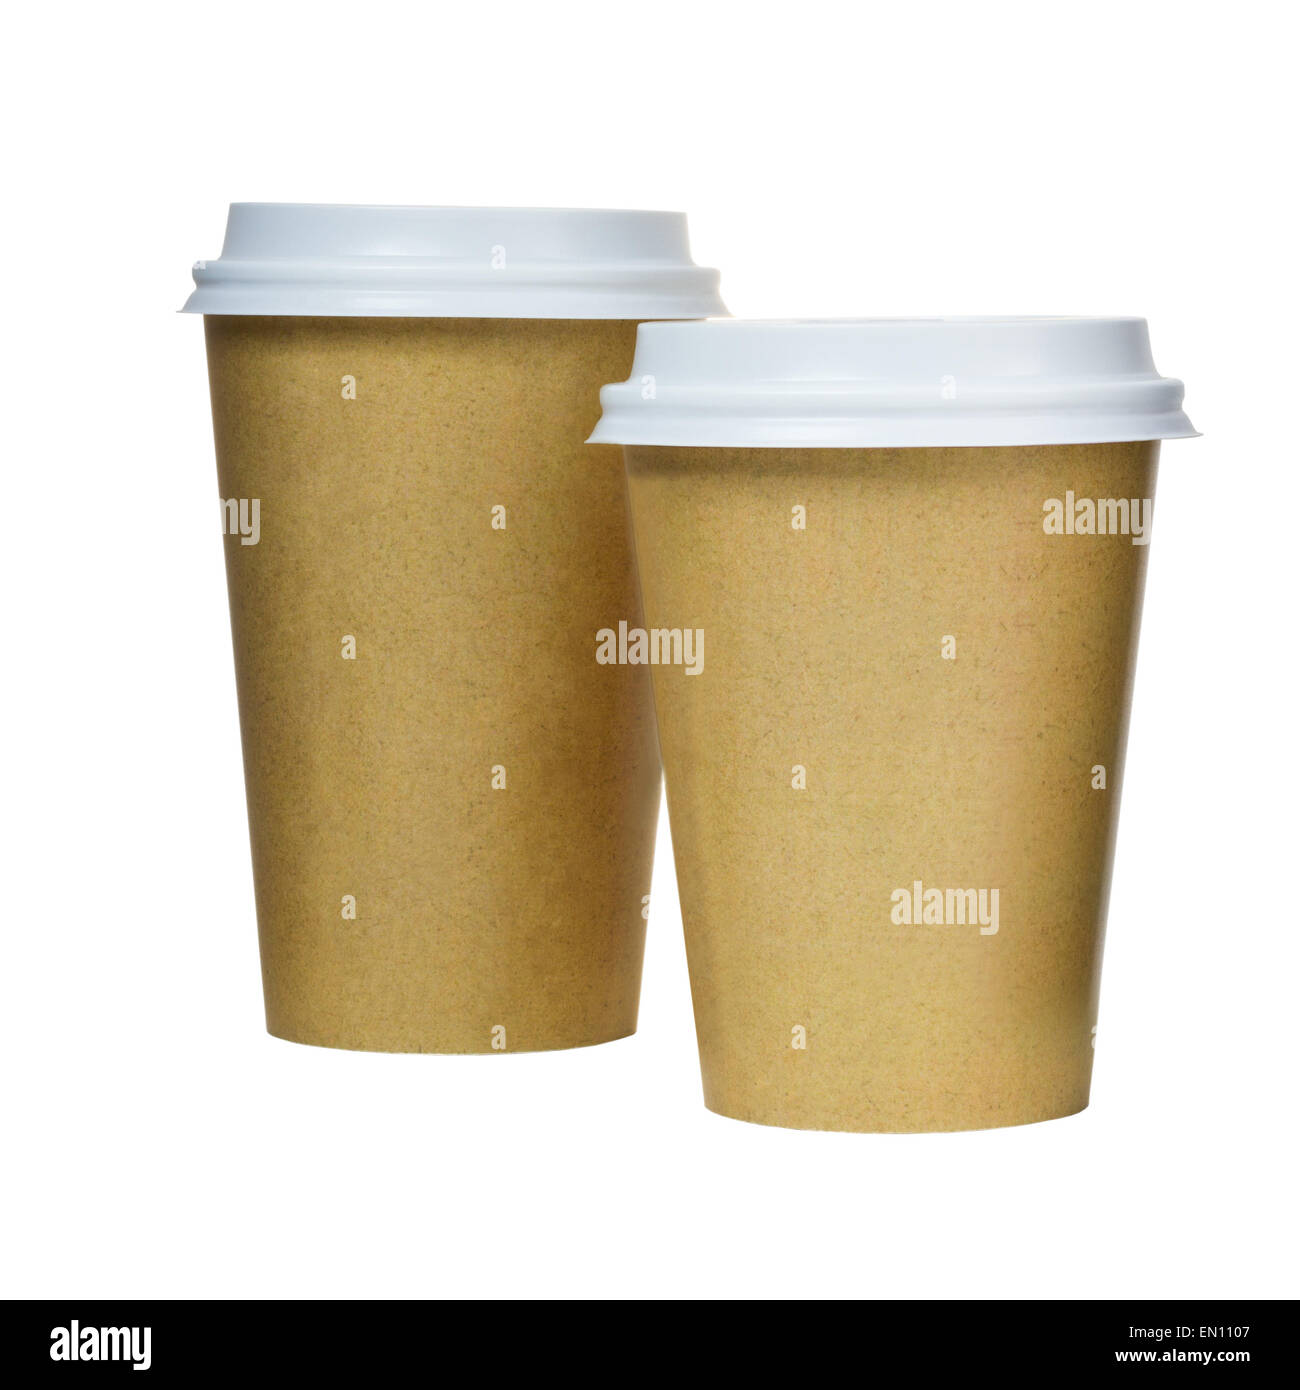 Takeaway coffee cups isolated on white background. Coffee packag - Stock Image